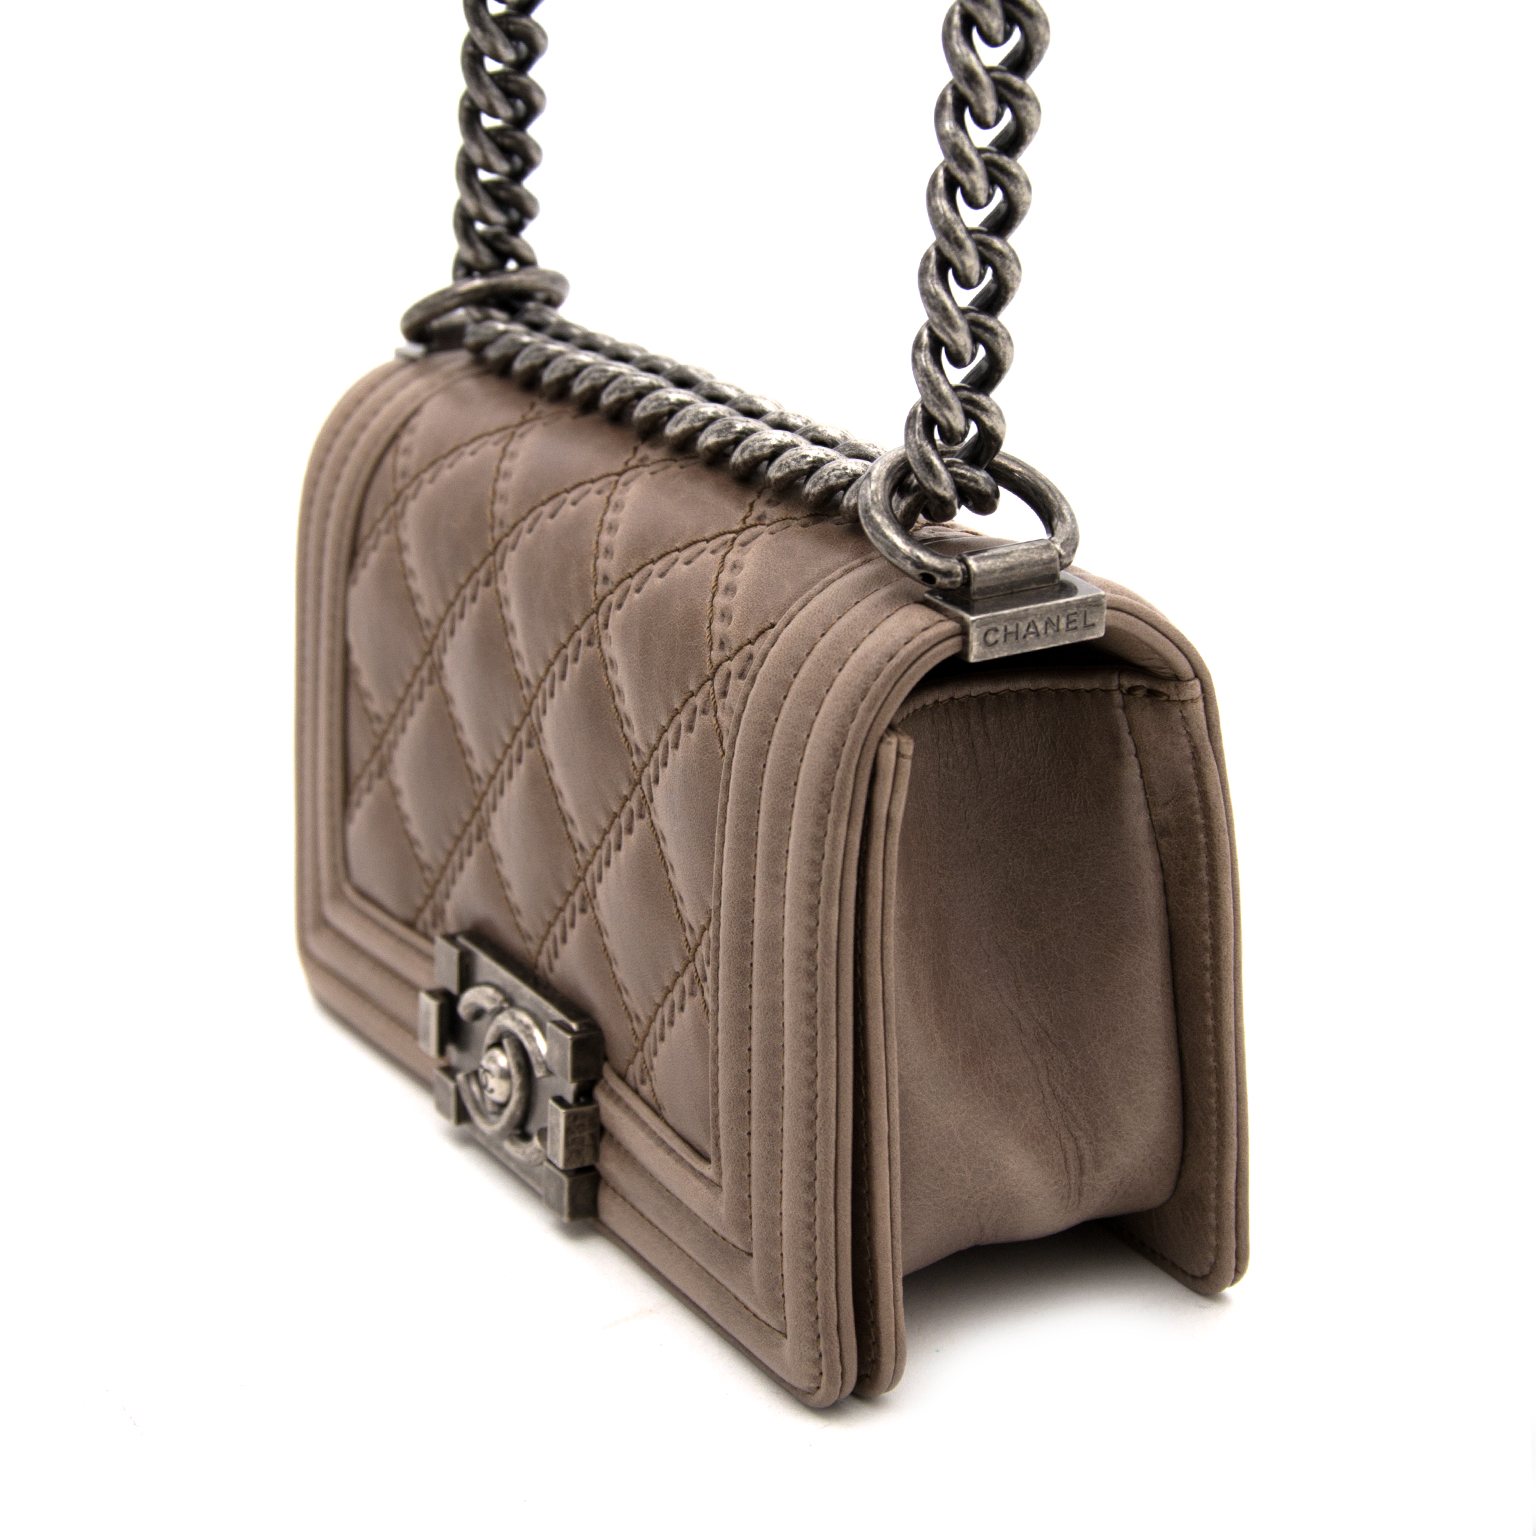 shop real real 100% authentic luxury chaneltaupe  small boy bag webshop labellov.com Antwerp, designer, best price